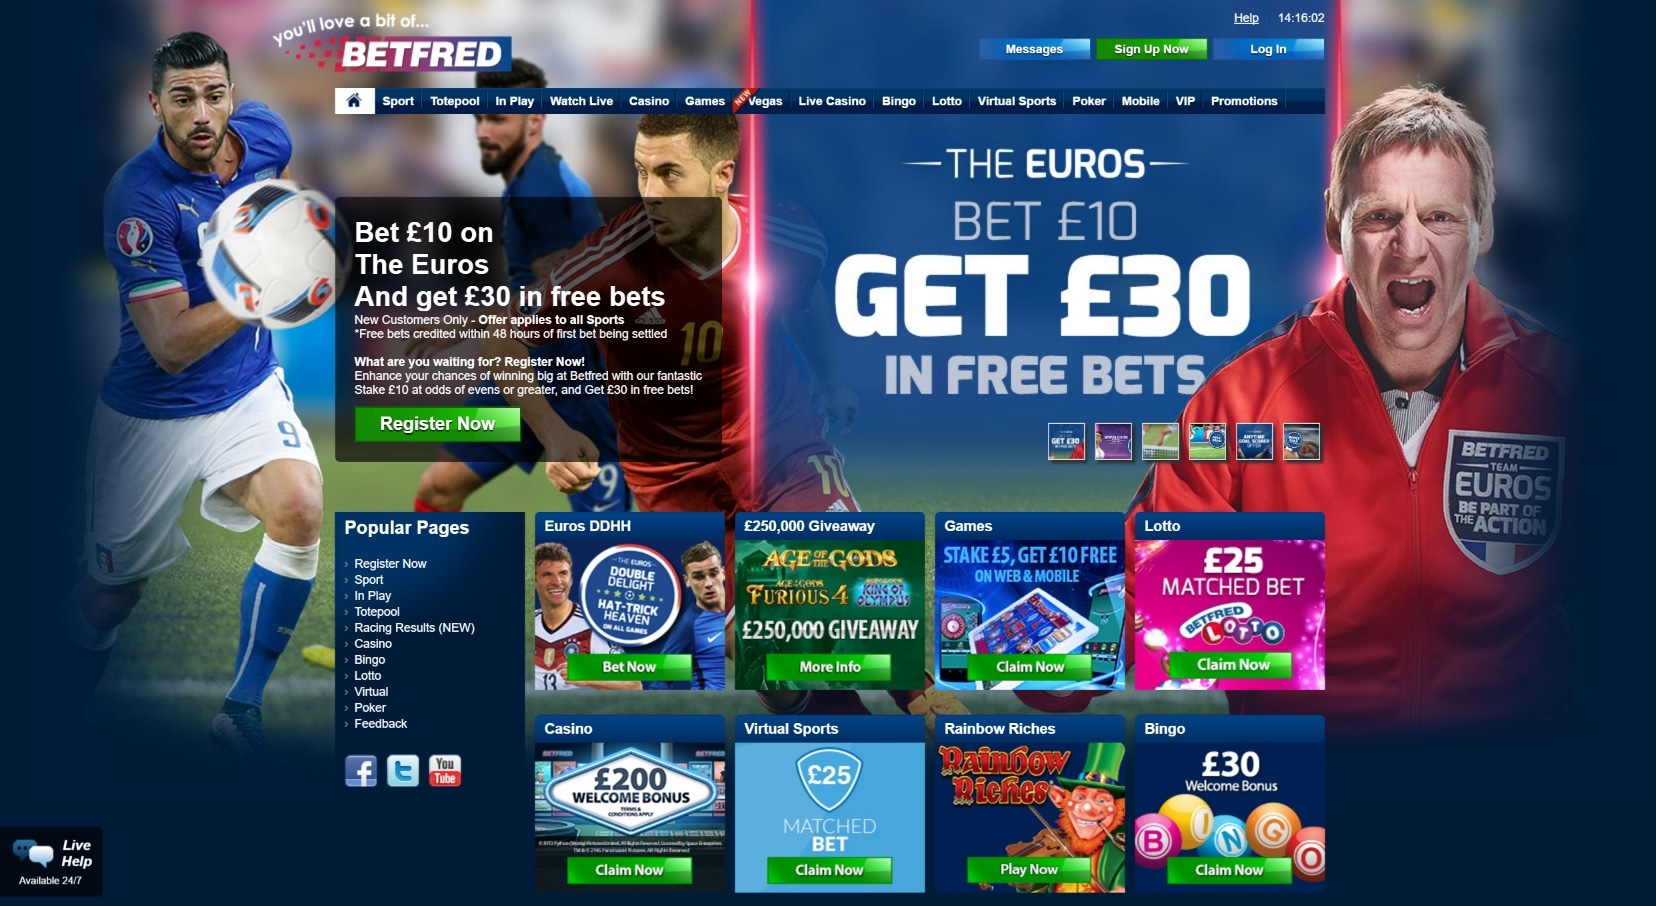 paypal casino site betfred overview